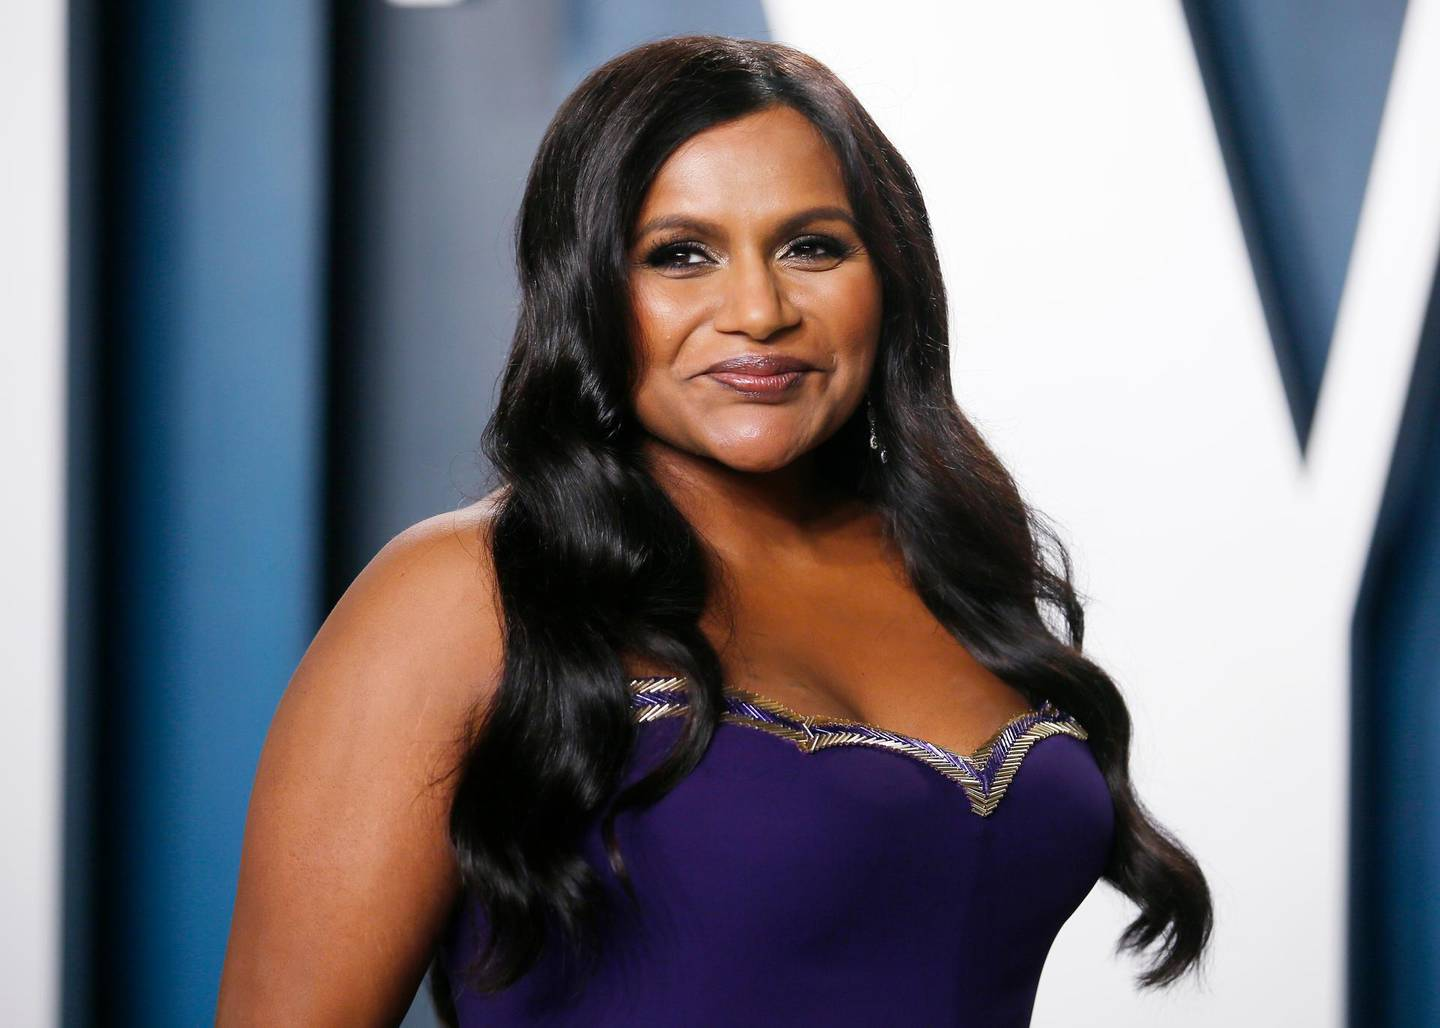 Mindy Kaling attends the Vanity Fair Oscar party in Beverly Hills during the 92nd Academy Awards, in Los Angeles, California, U.S., February 9, 2020.     REUTERS/Danny Moloshok